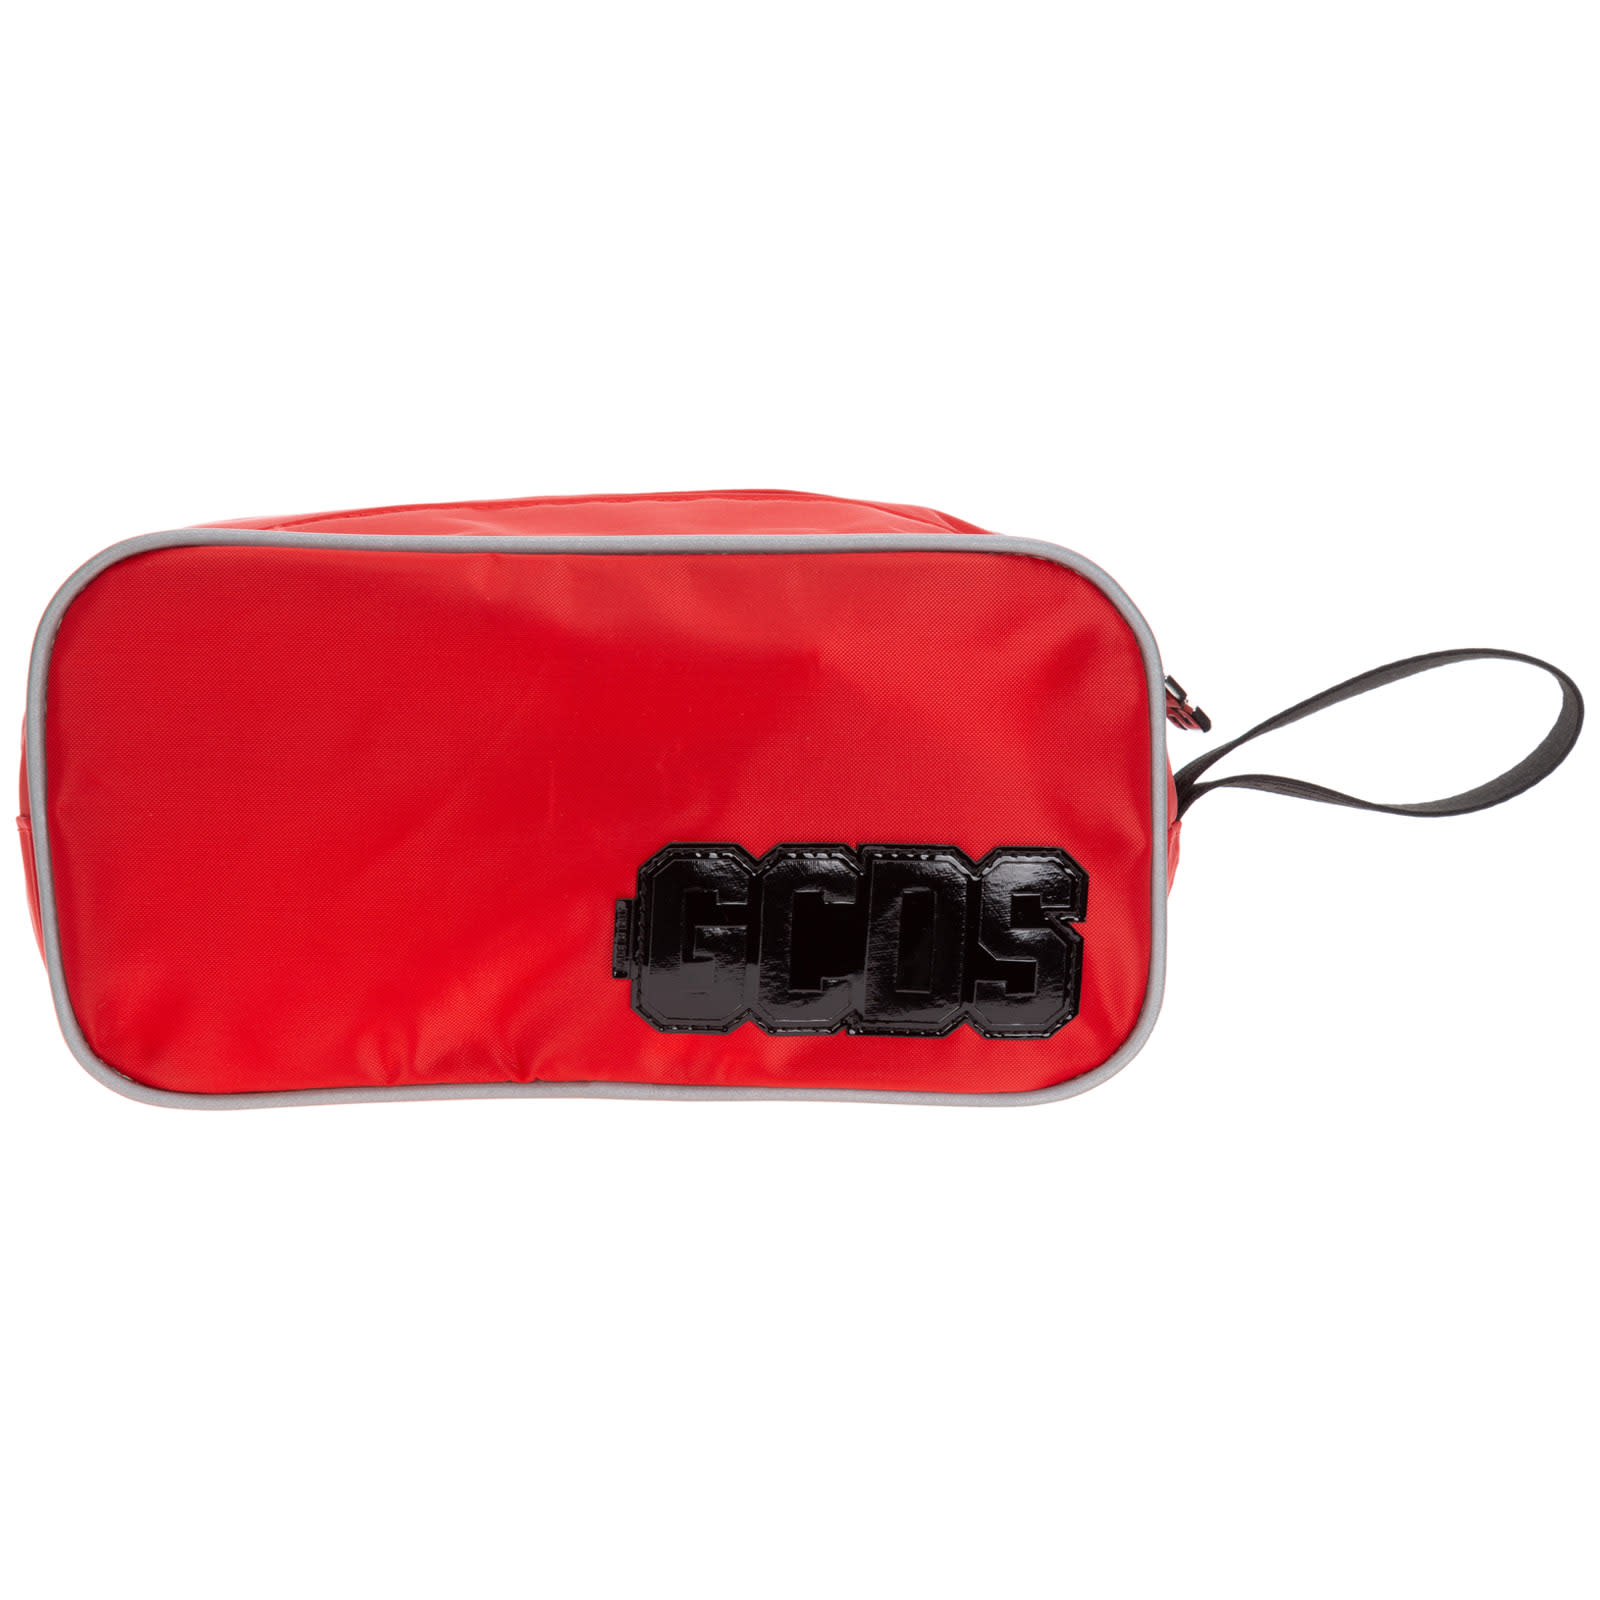 Gcds Bright Red Toiletry Bag